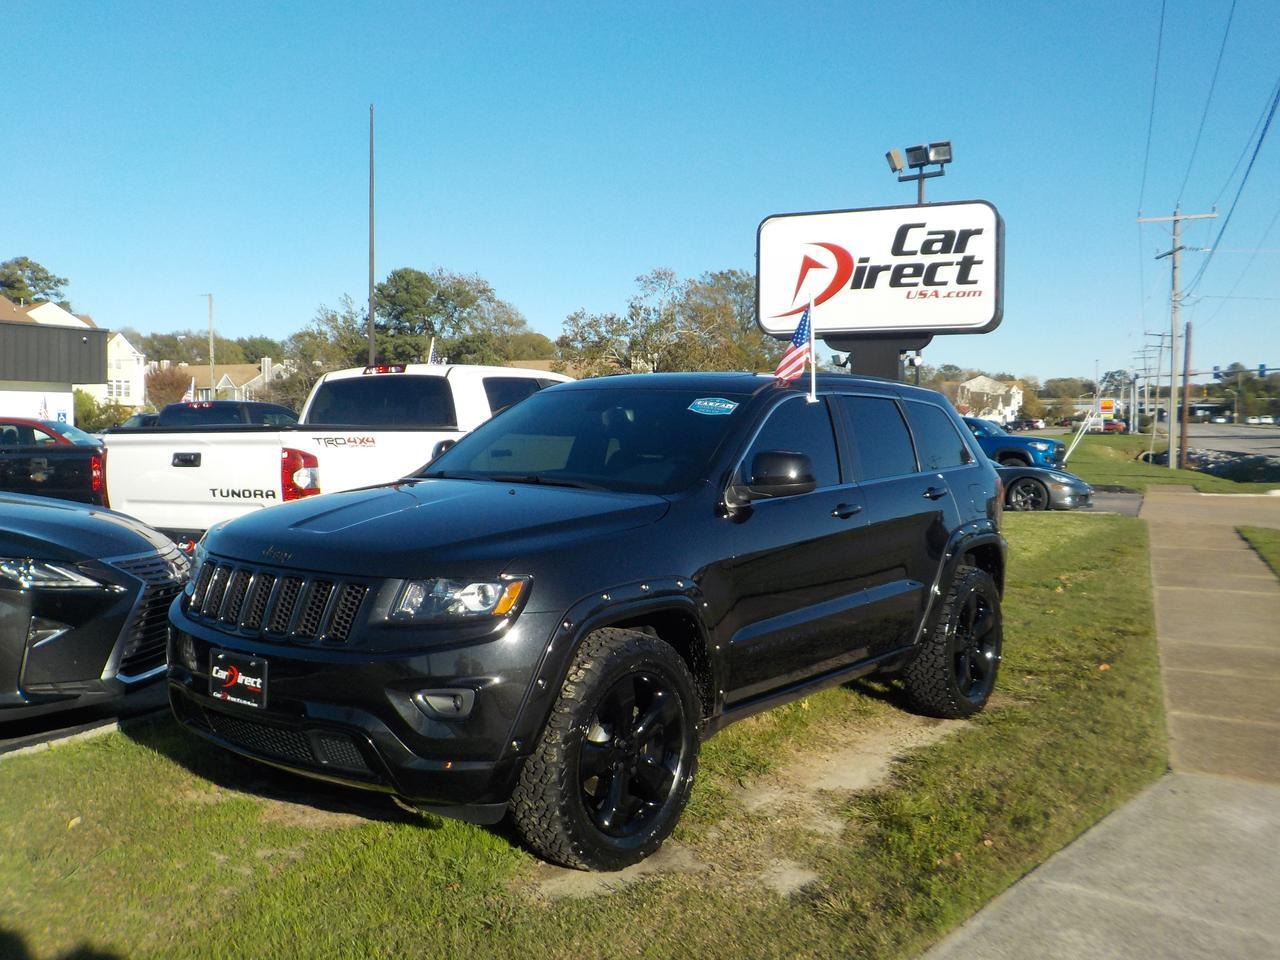 2015 JEEP GRAND CHEROKEE LAREDO 4X4, BLUETOOTH, REMOTE START, SUNROOF, HEATED SEATS, LEATHER, ONLY 62K MILES!